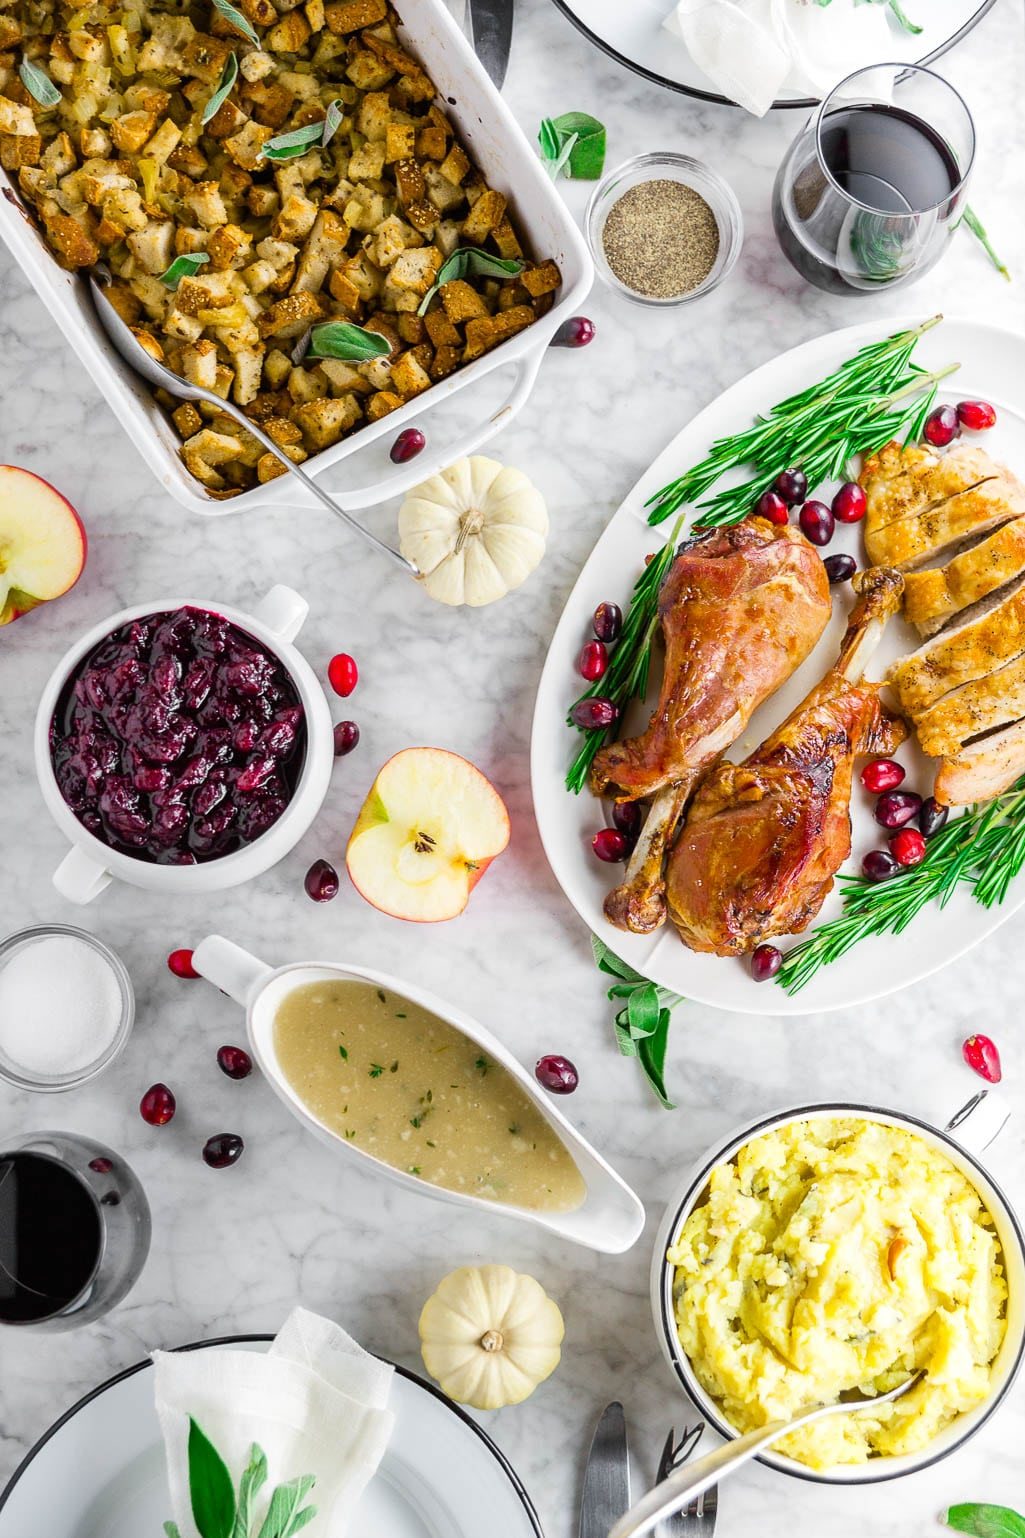 A white marble table with a Thanksgiving feast with gluten-free stuffing, turkey legs with cranberries and rosemary, cranberry sauce, gluten-free grave, a bowl of mashed potatoes, and two glasses of red wine with place settings.